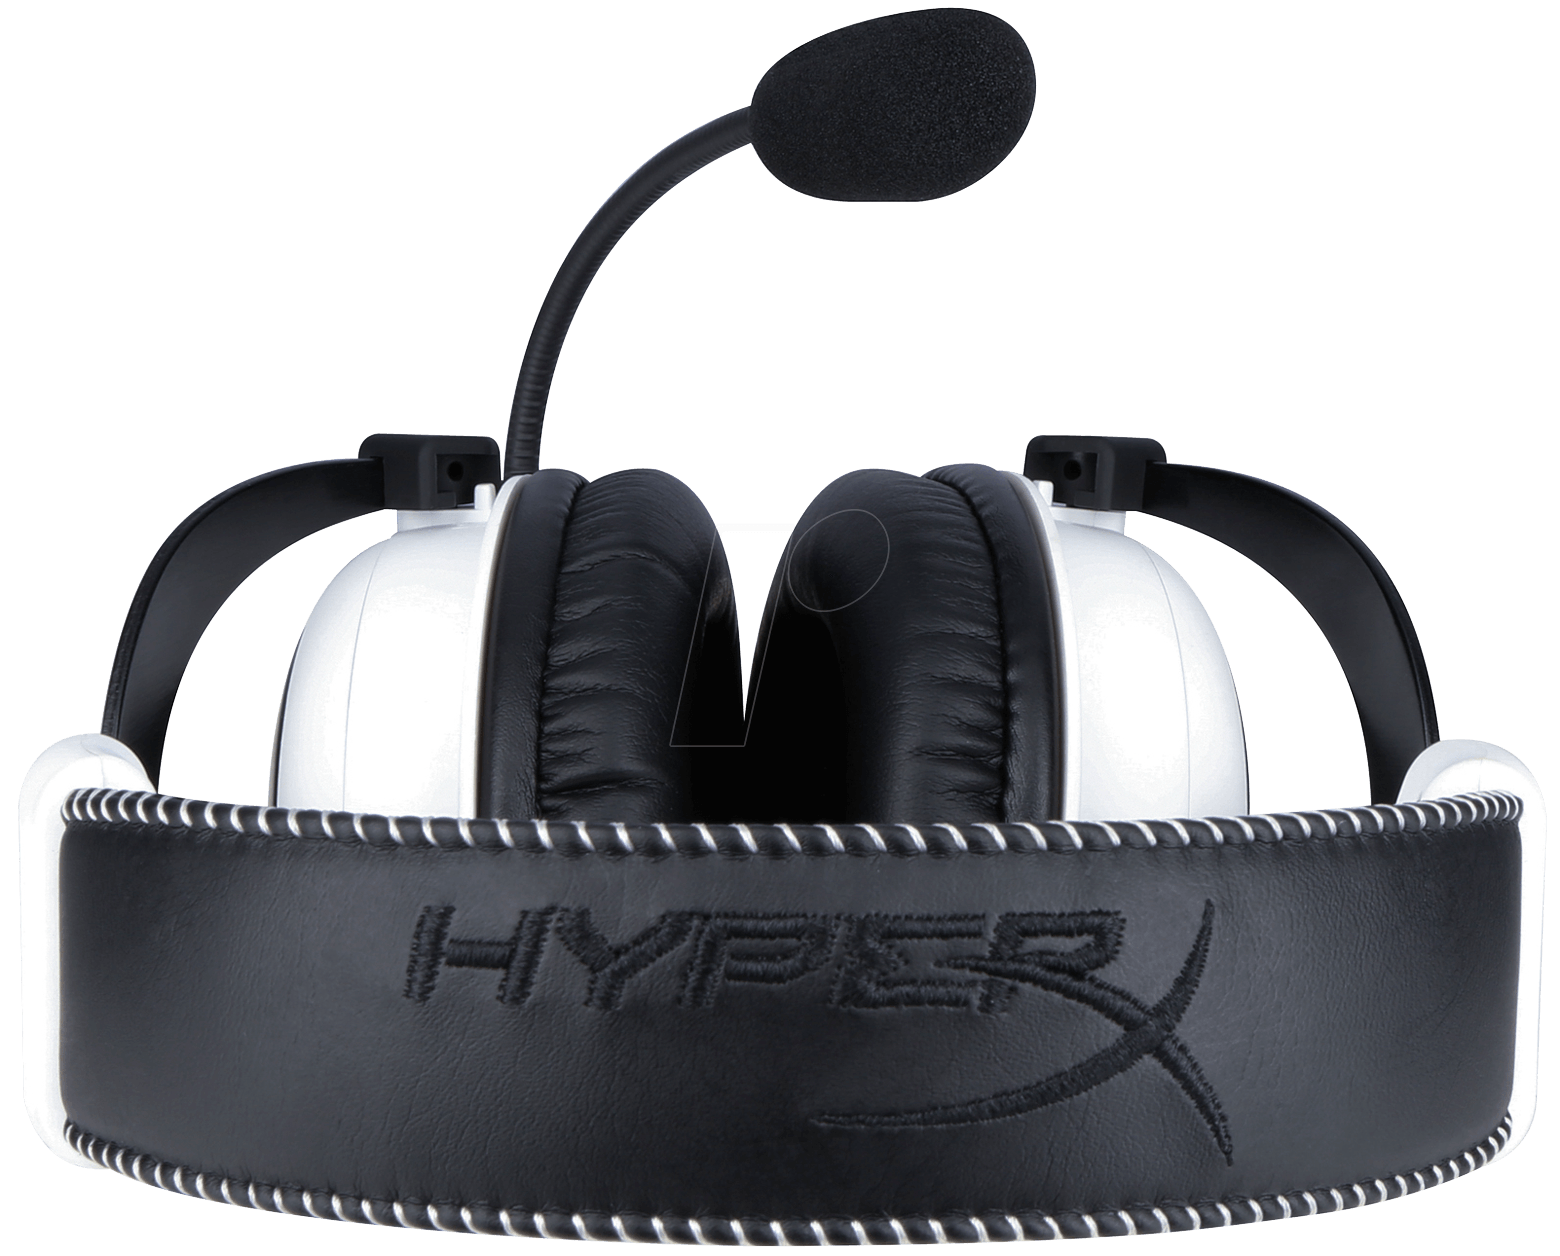 https://cdn-reichelt.de/bilder/web/xxl_ws/EB00/KINGSTON_HYPERX_CLOUD_WS_05.png